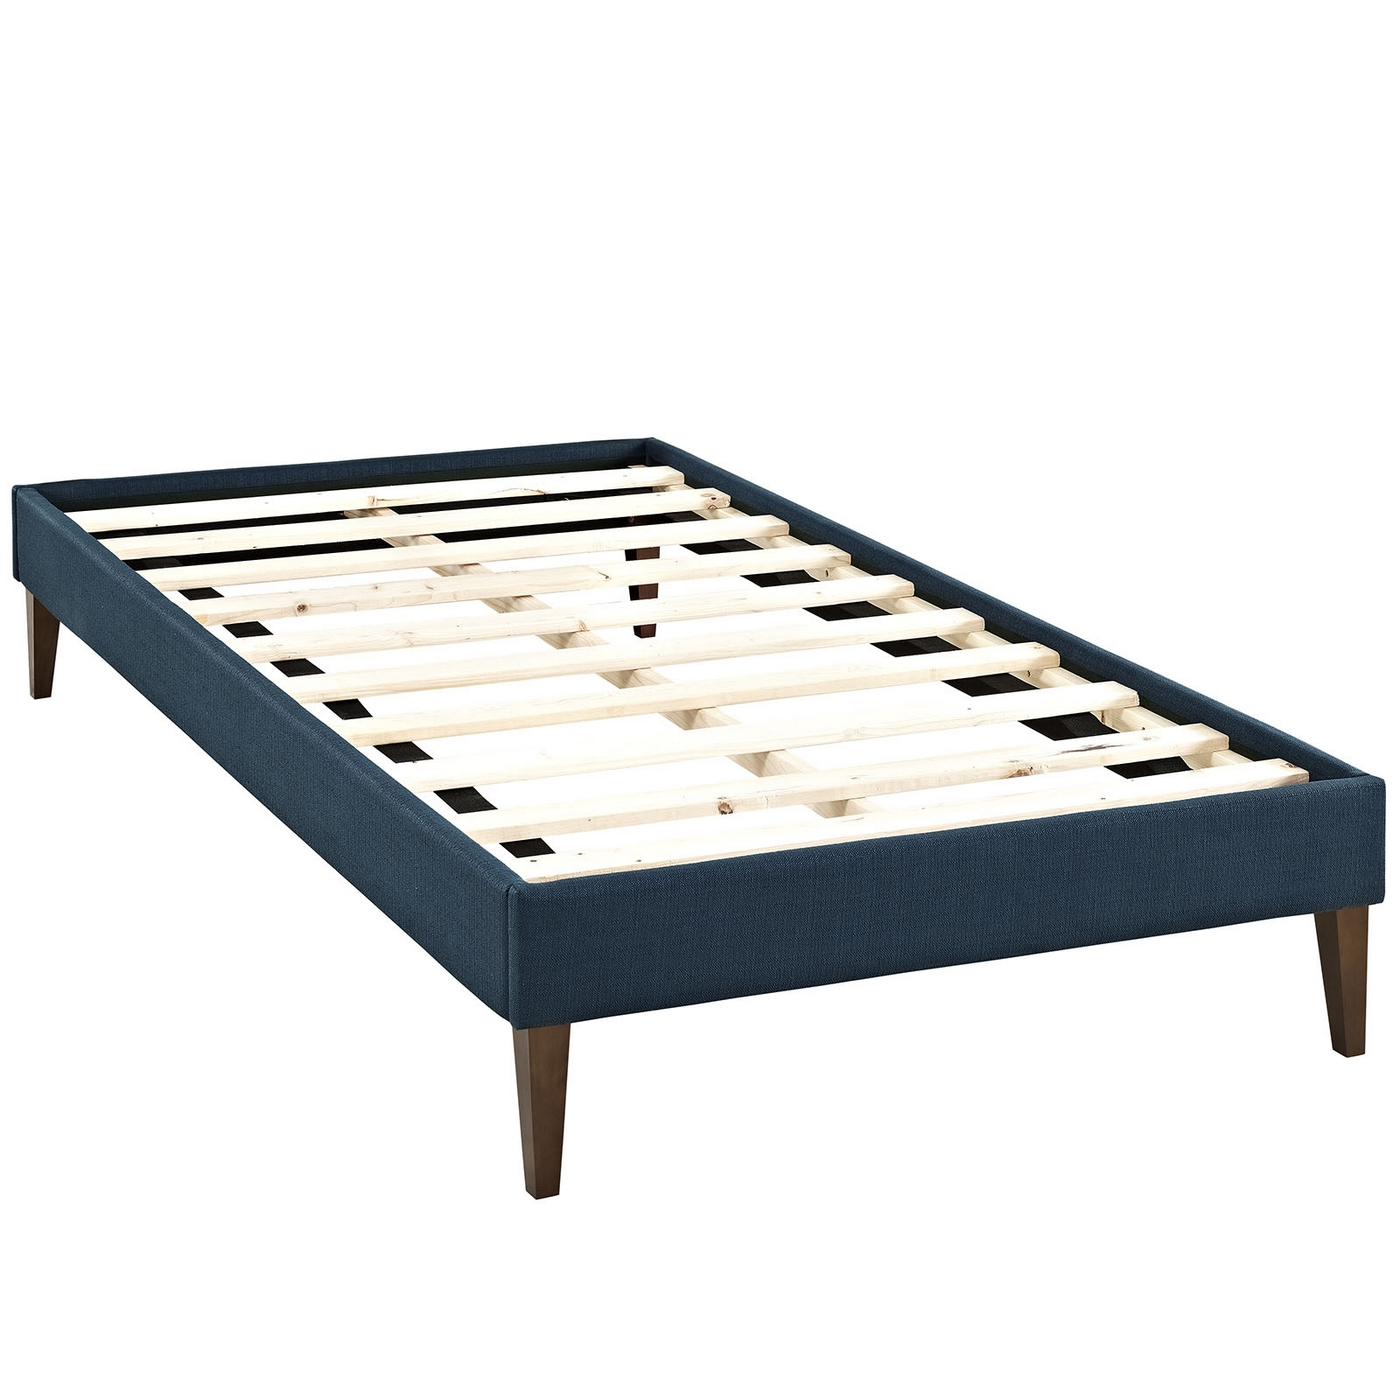 Sharon modern twin fabric platform bed frame with square for Twin bed frame